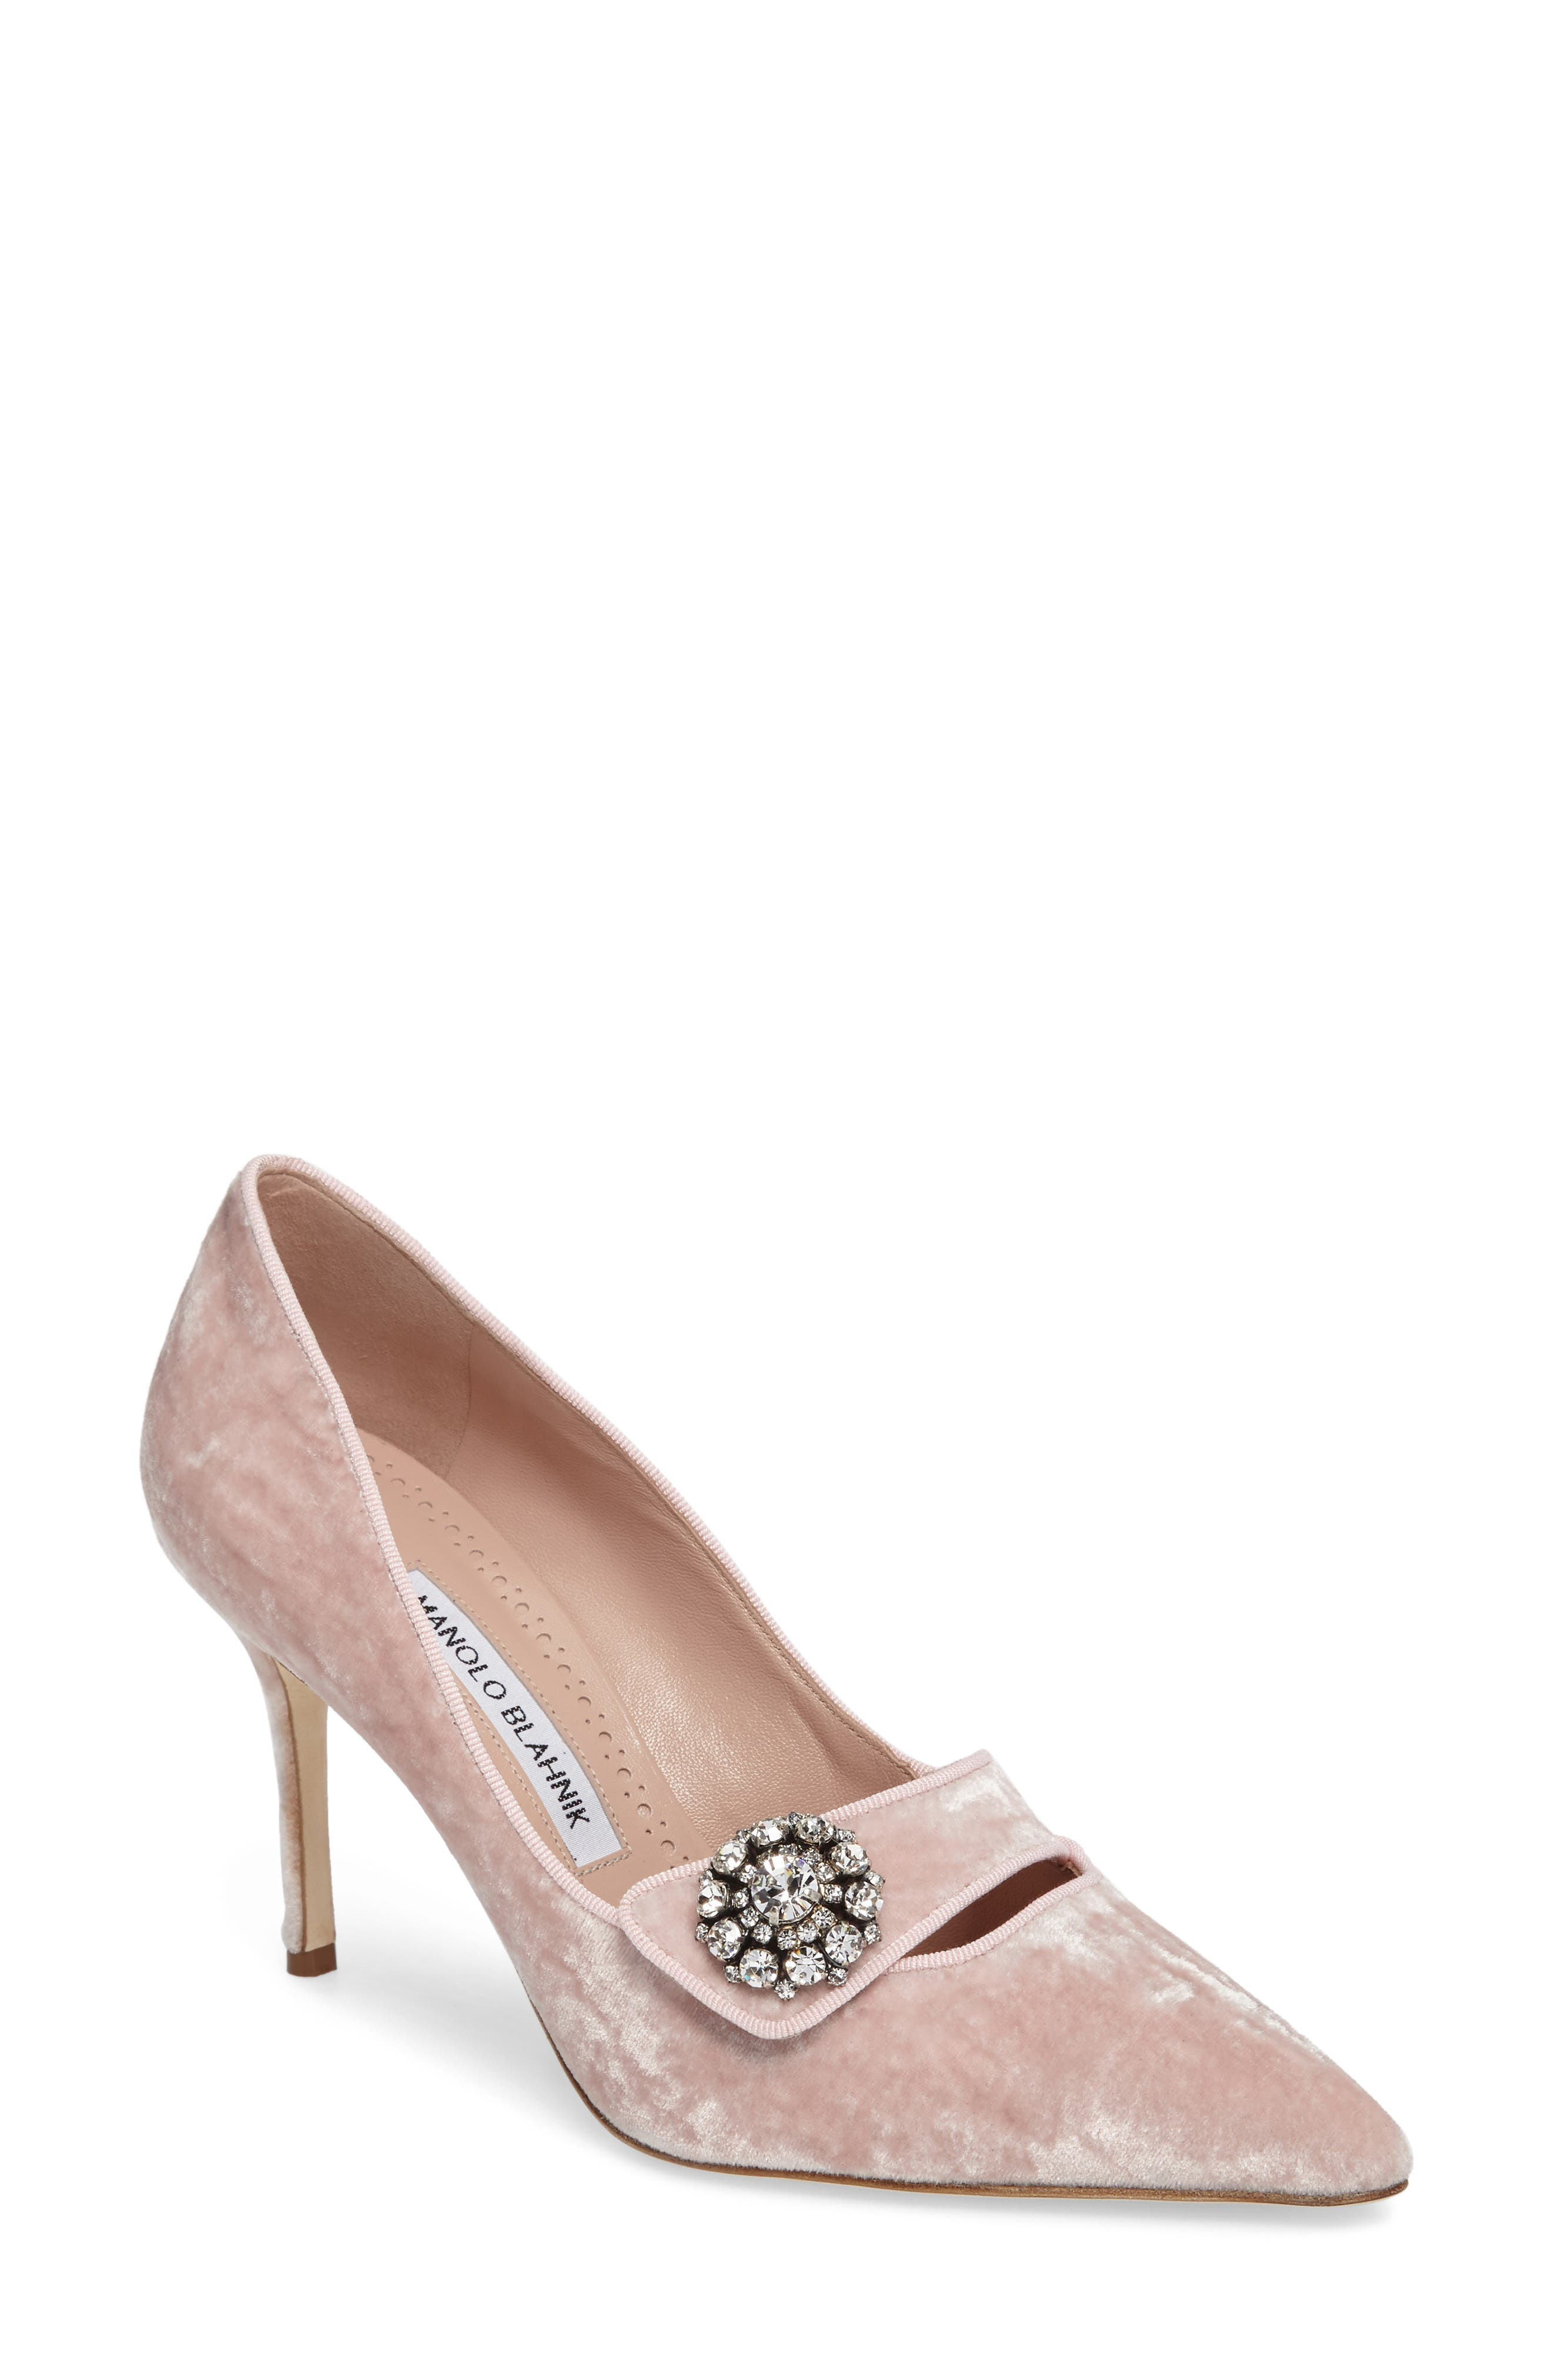 Decebalo Pump,                         Main,                         color, Blush Velvet